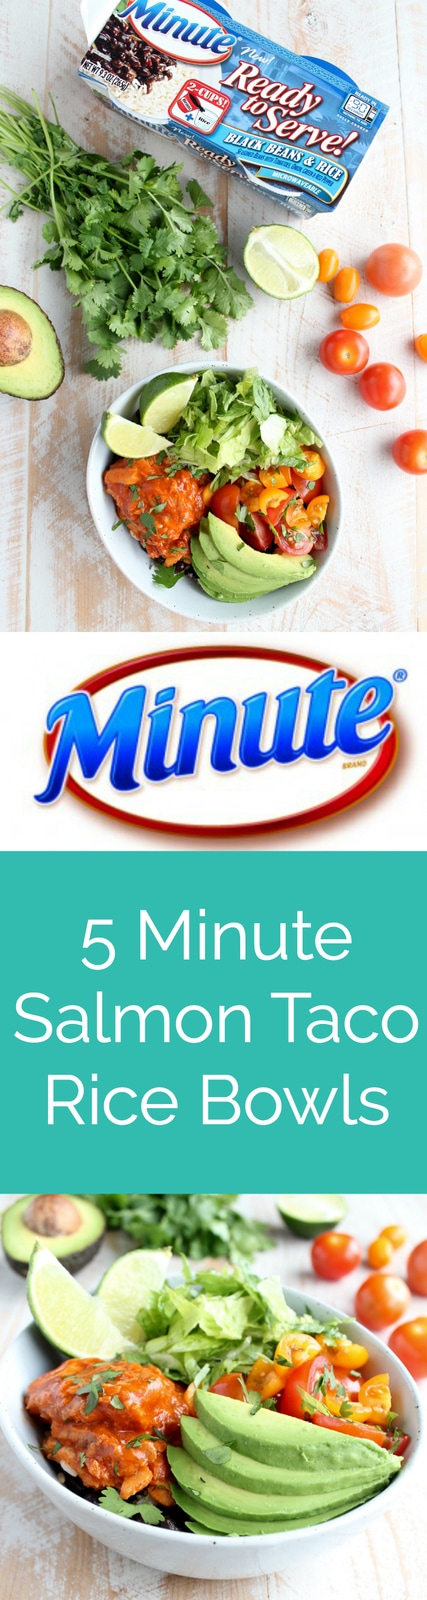 5 Minute Salmon Taco Rice Bowls